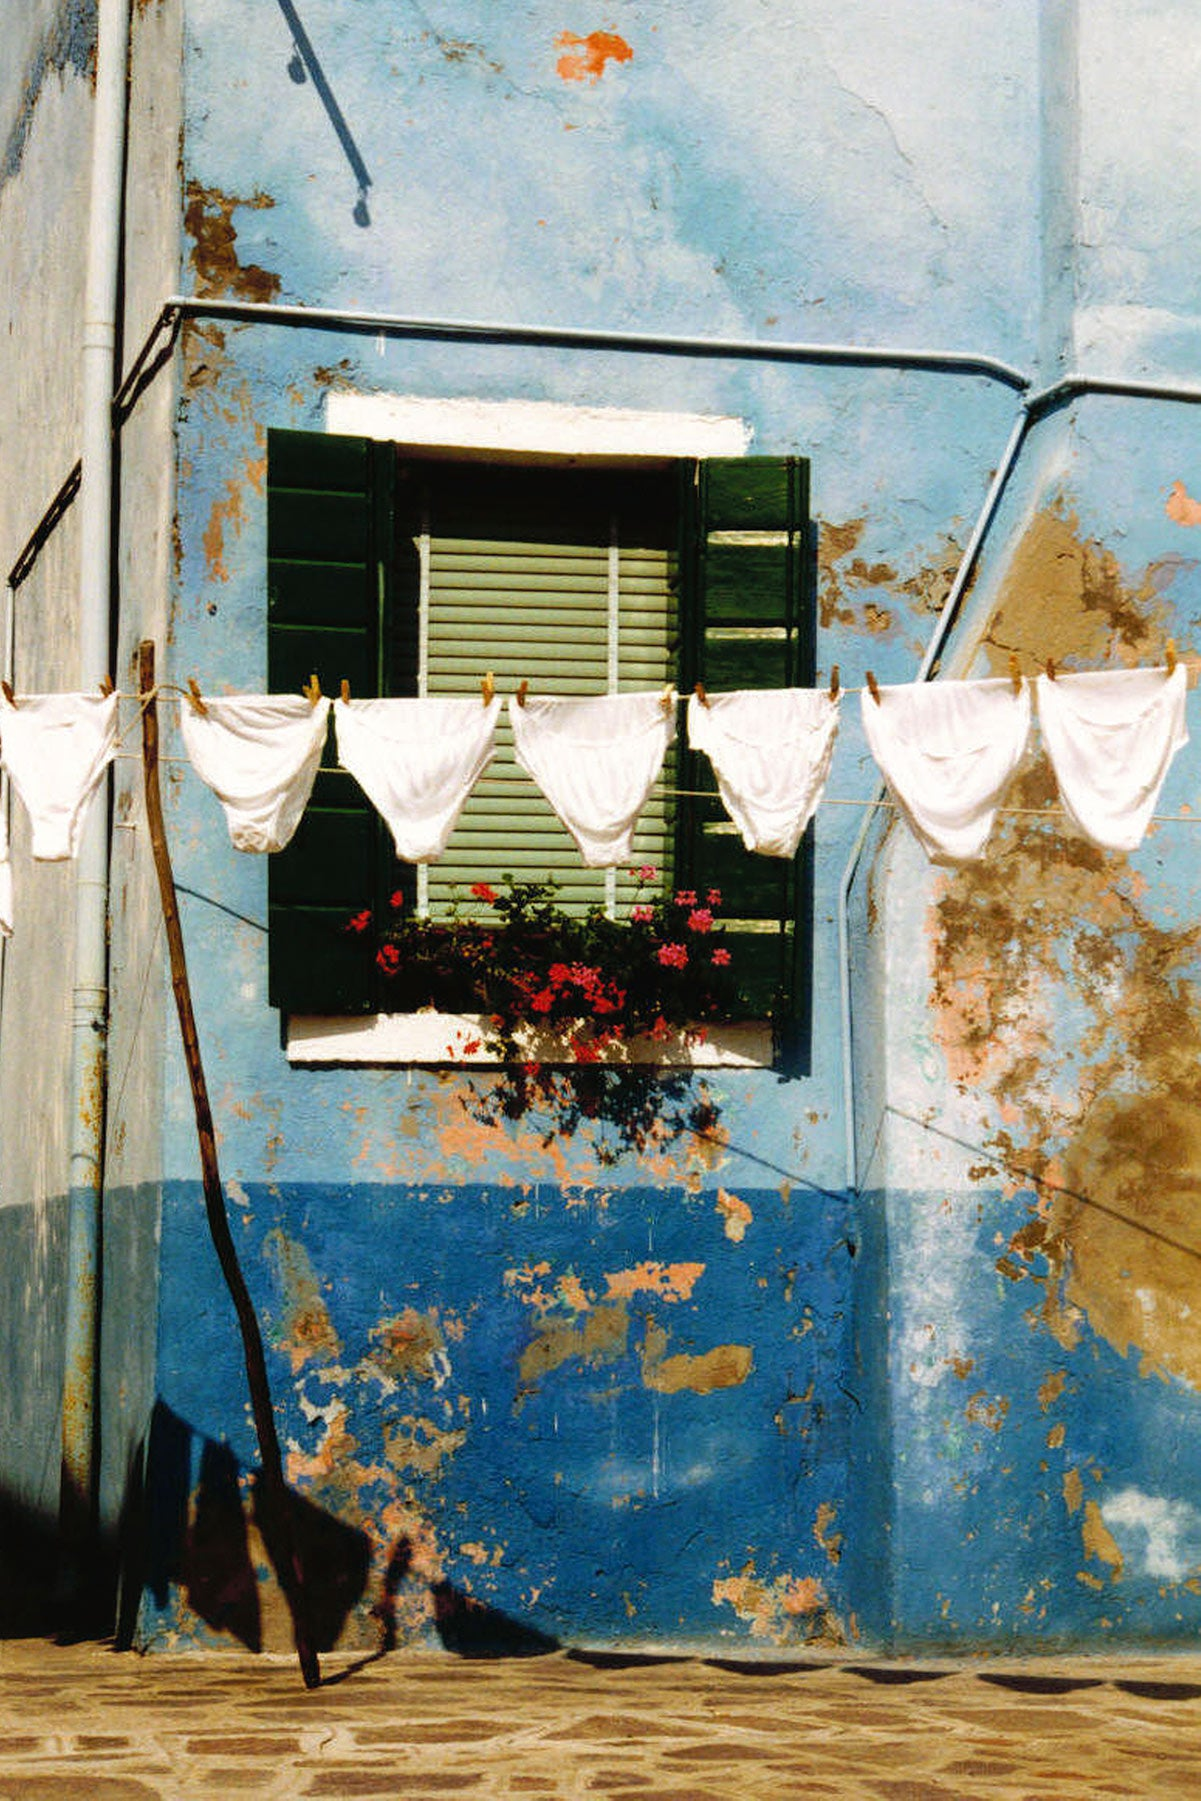 A washing line full of white knickers set against a colourful blue, but crumbling wall, with an inset window and window box of red roses.